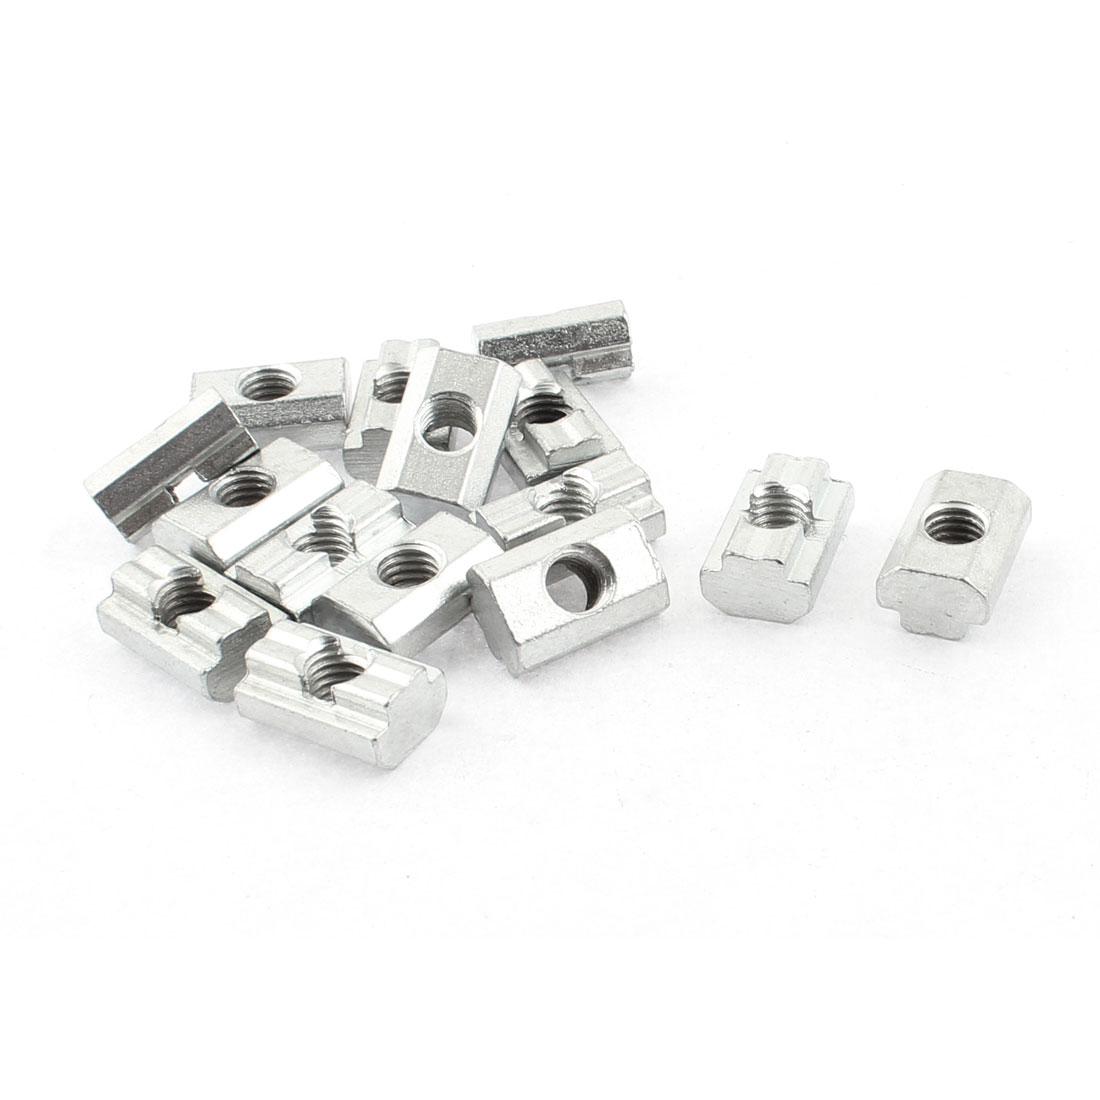 M8 Female Thread Metal T-slot Sliding Block Slot Nut Silver Tone 15pcs